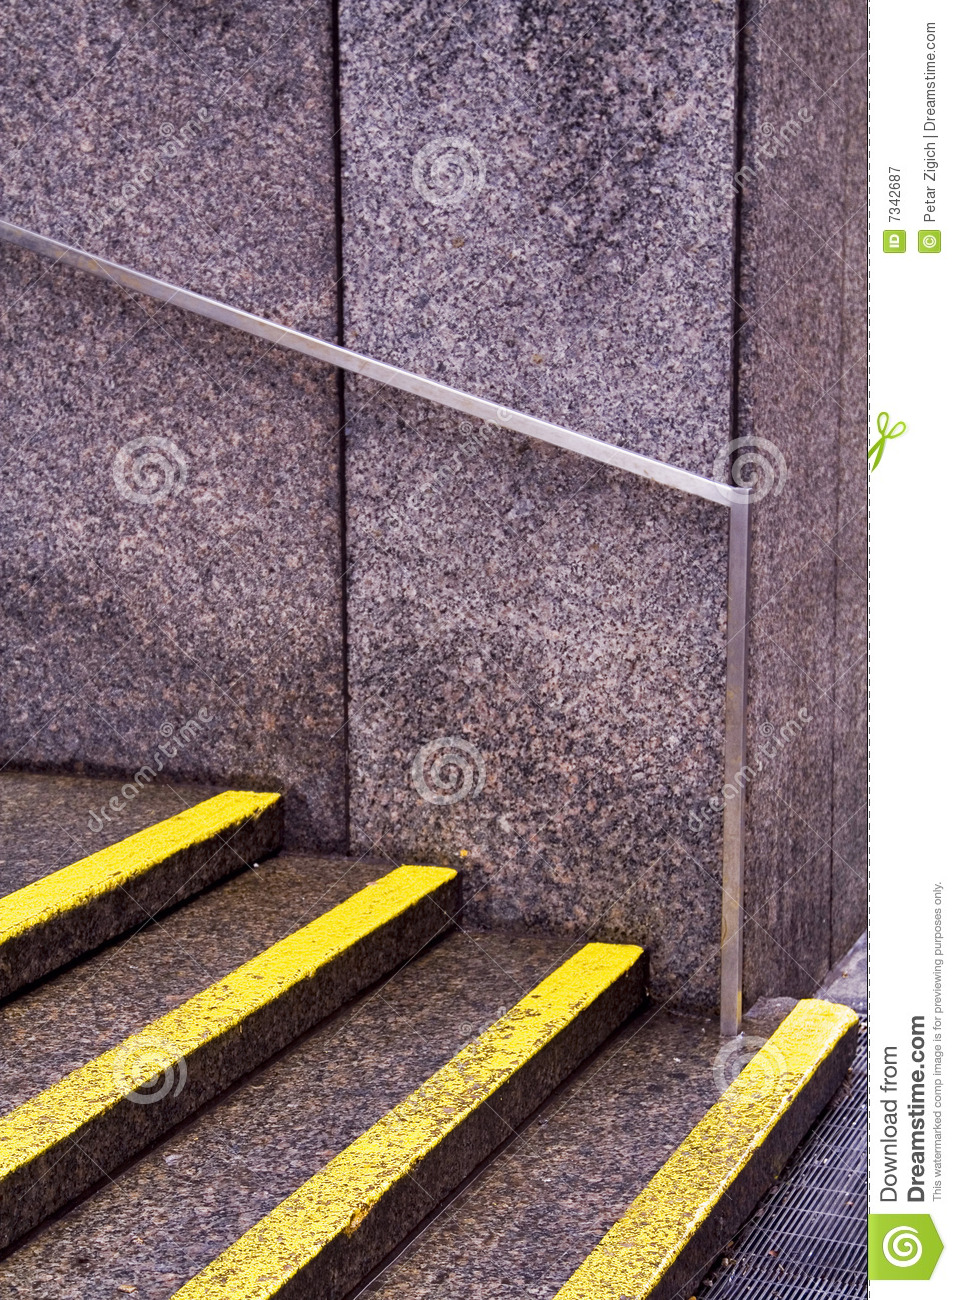 Stairs buildings royalty free stock photography image